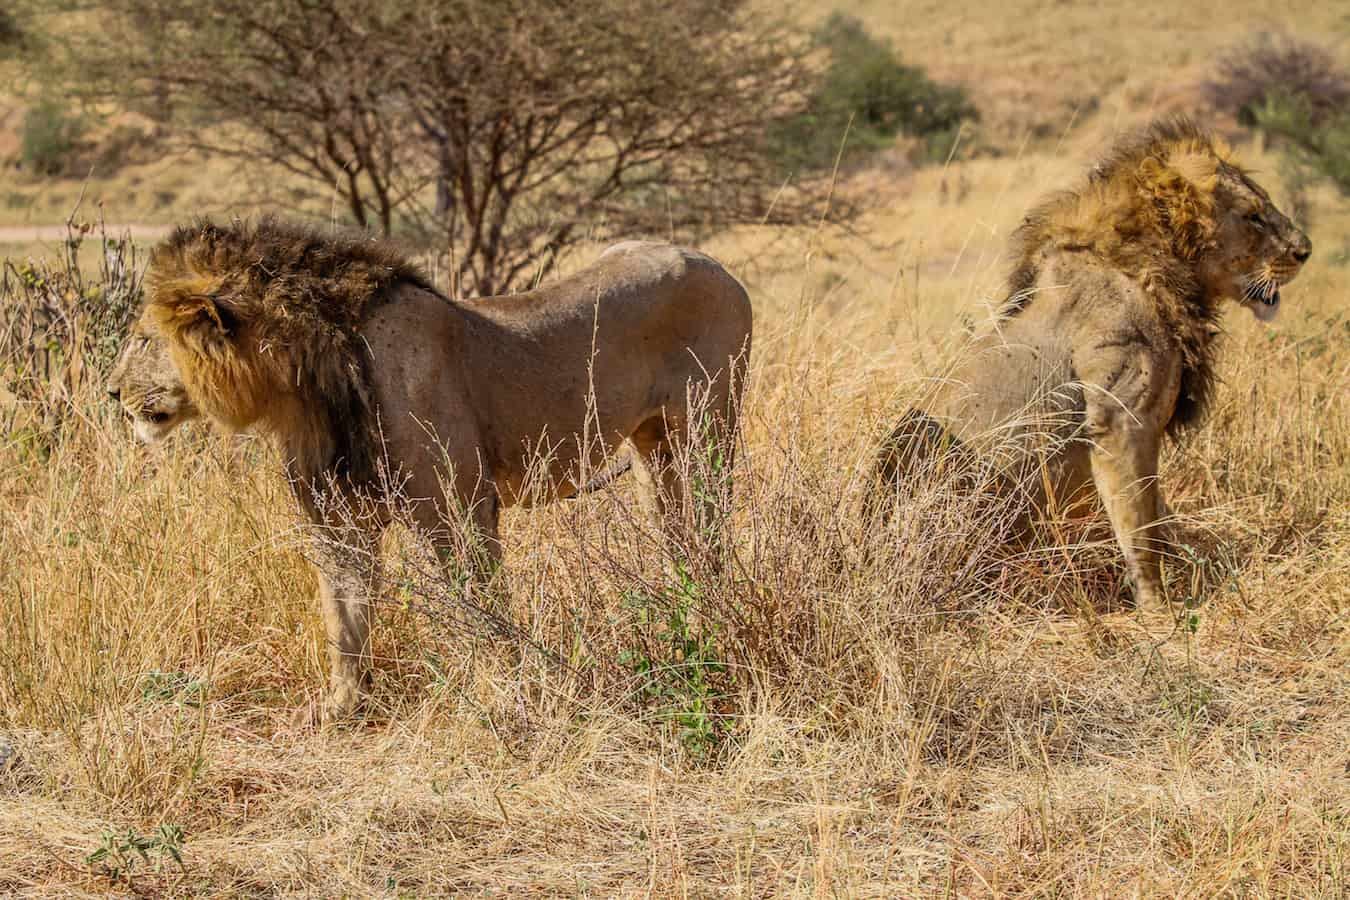 Male Lions in Tarangire National Park, Tanzania